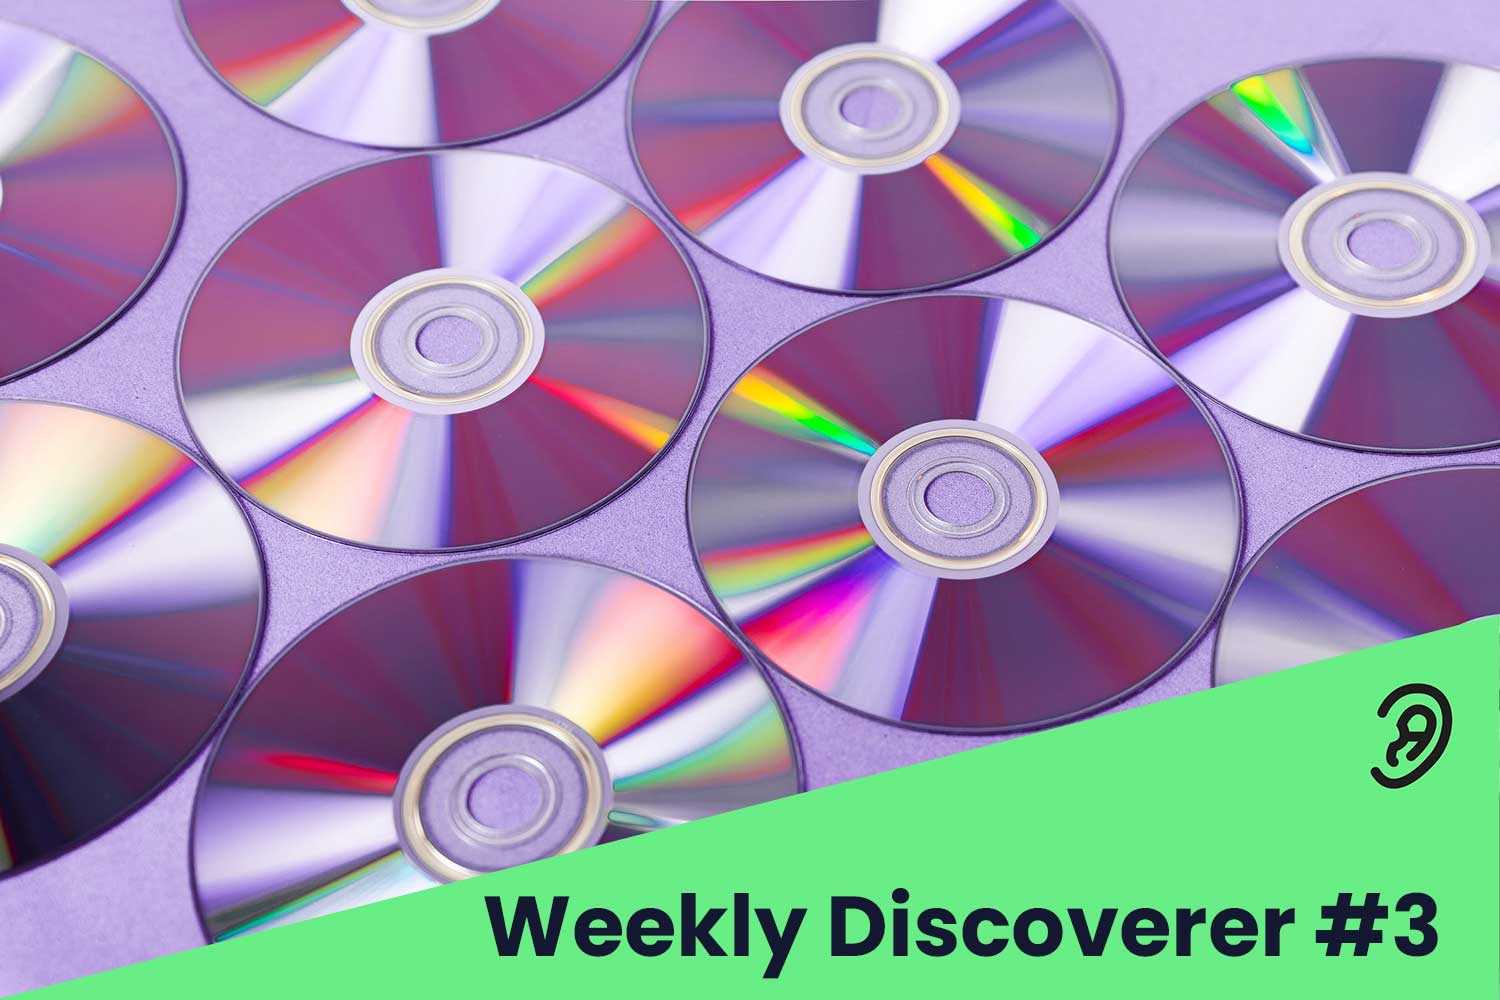 Weekly Discoverer 3